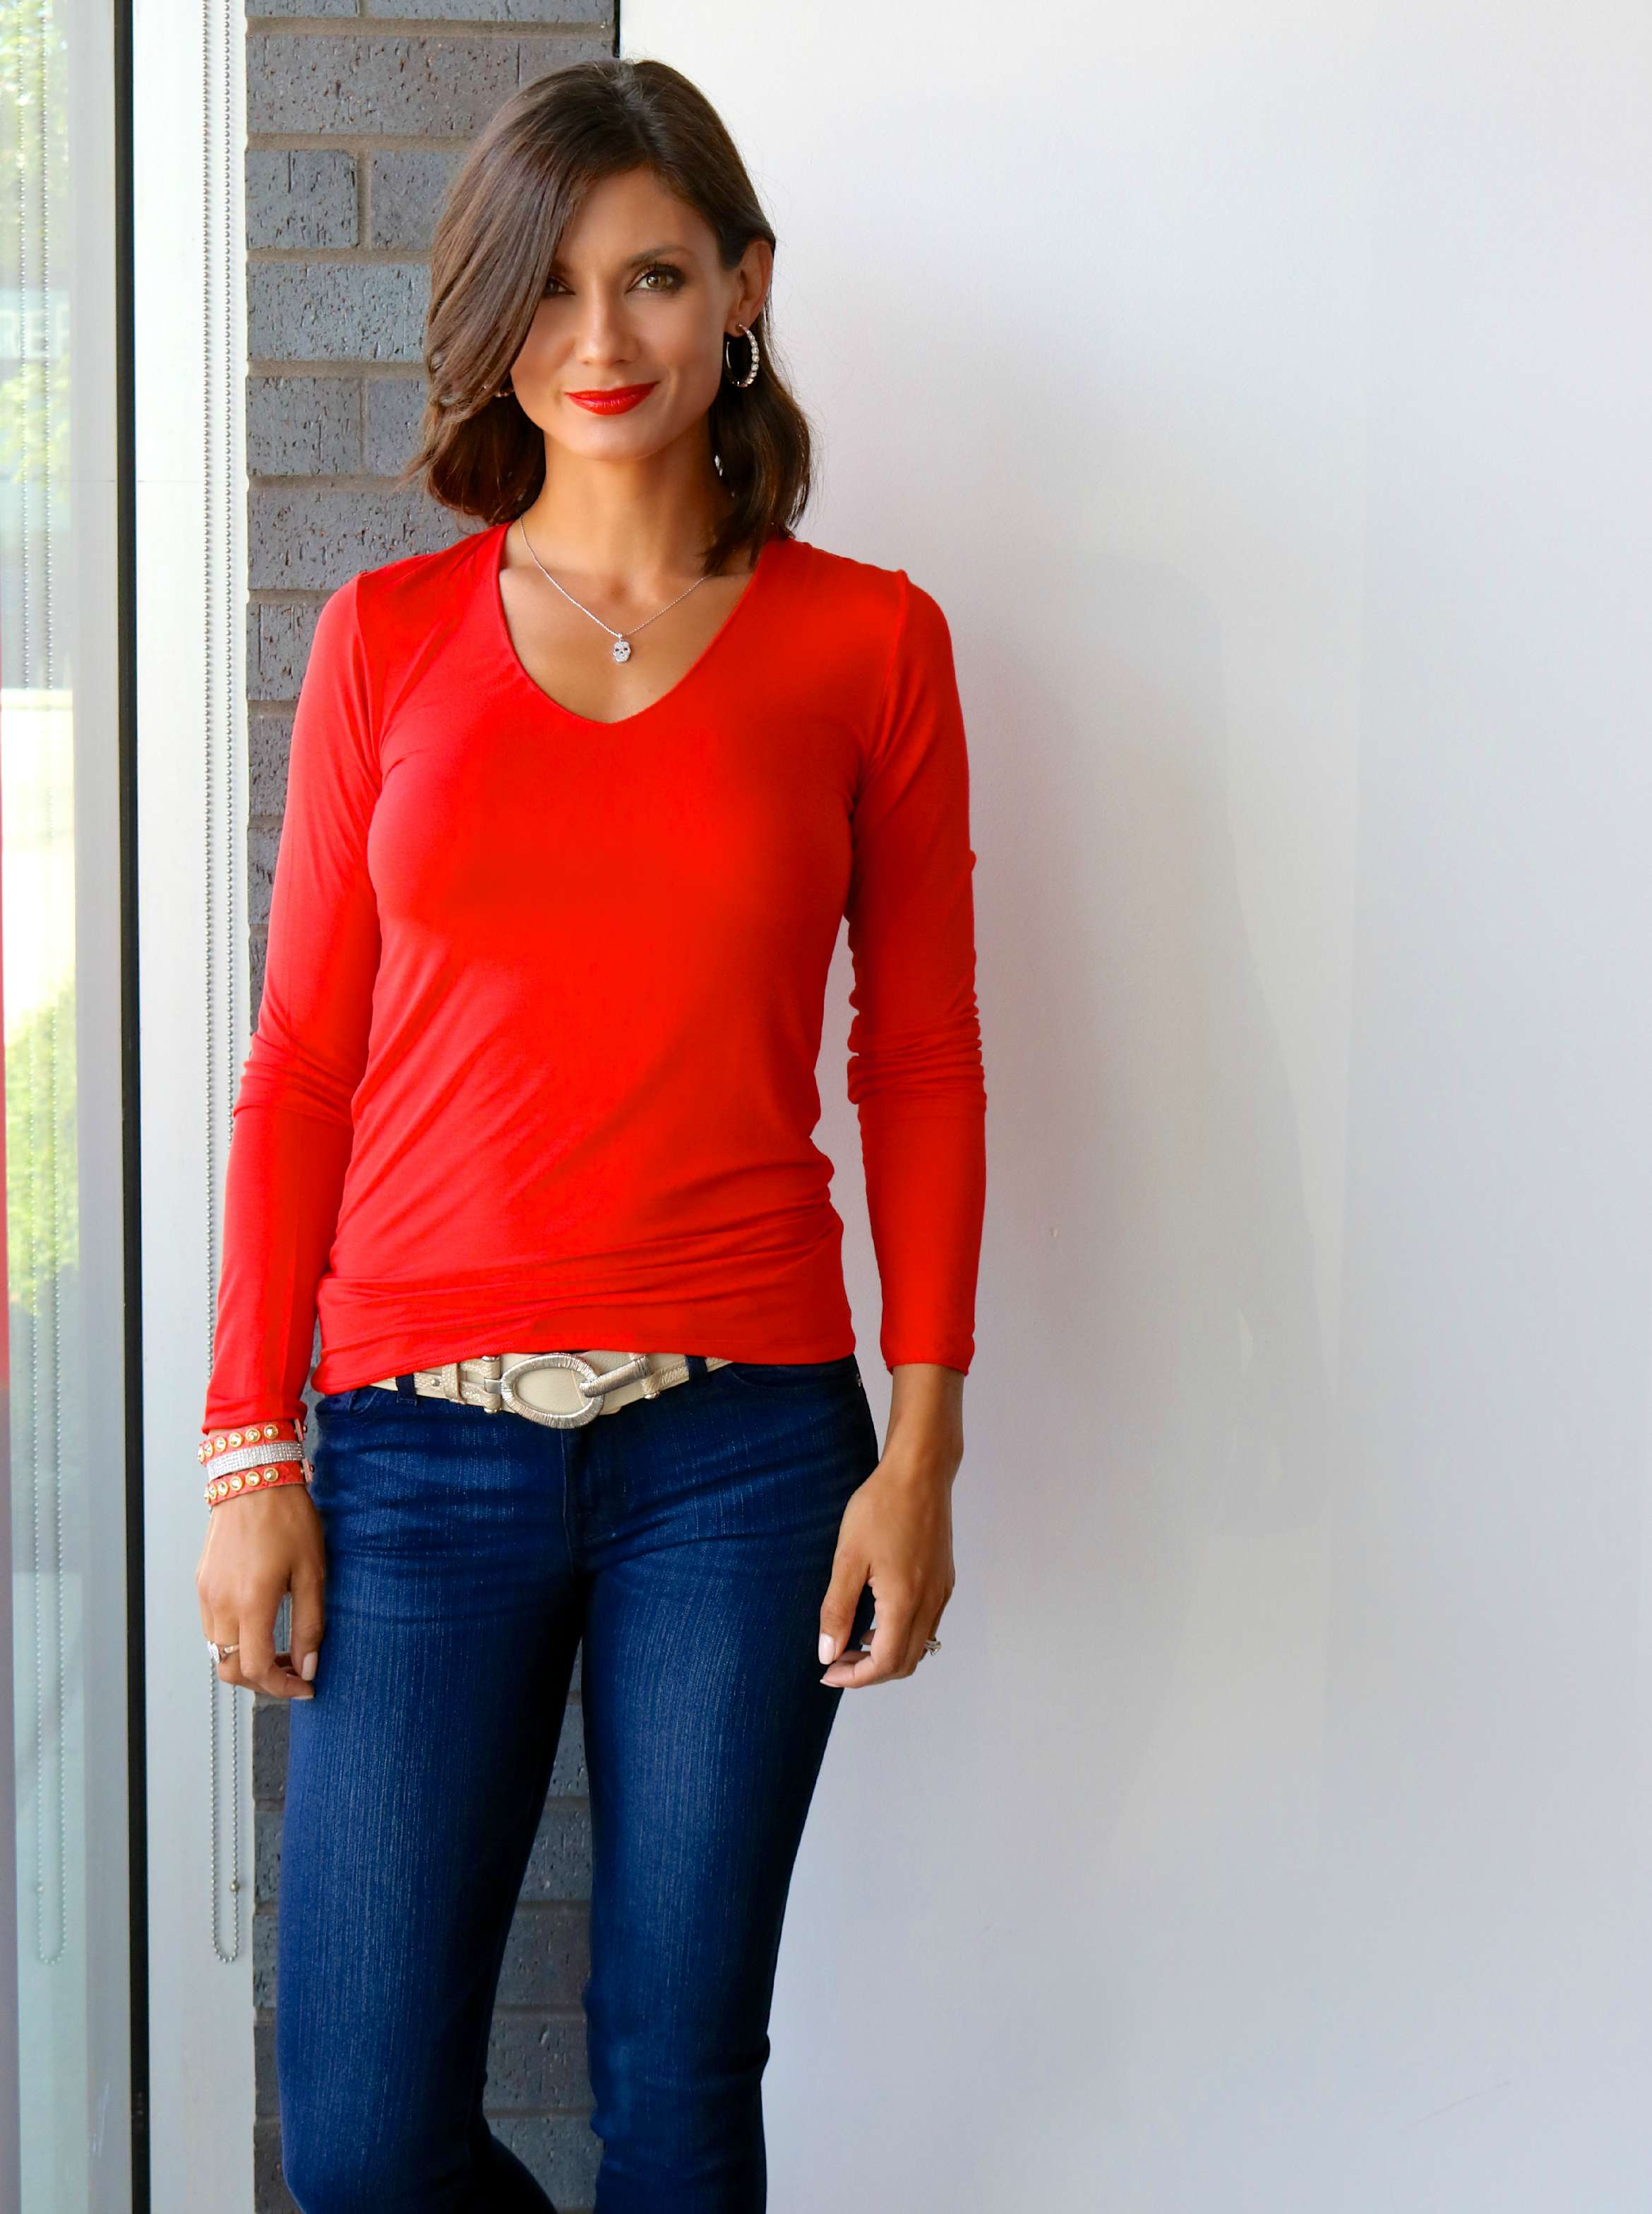 Majestic V-Neck Long Sleeve Tee in Flame , DL1961 Nicky jeans in Wooster